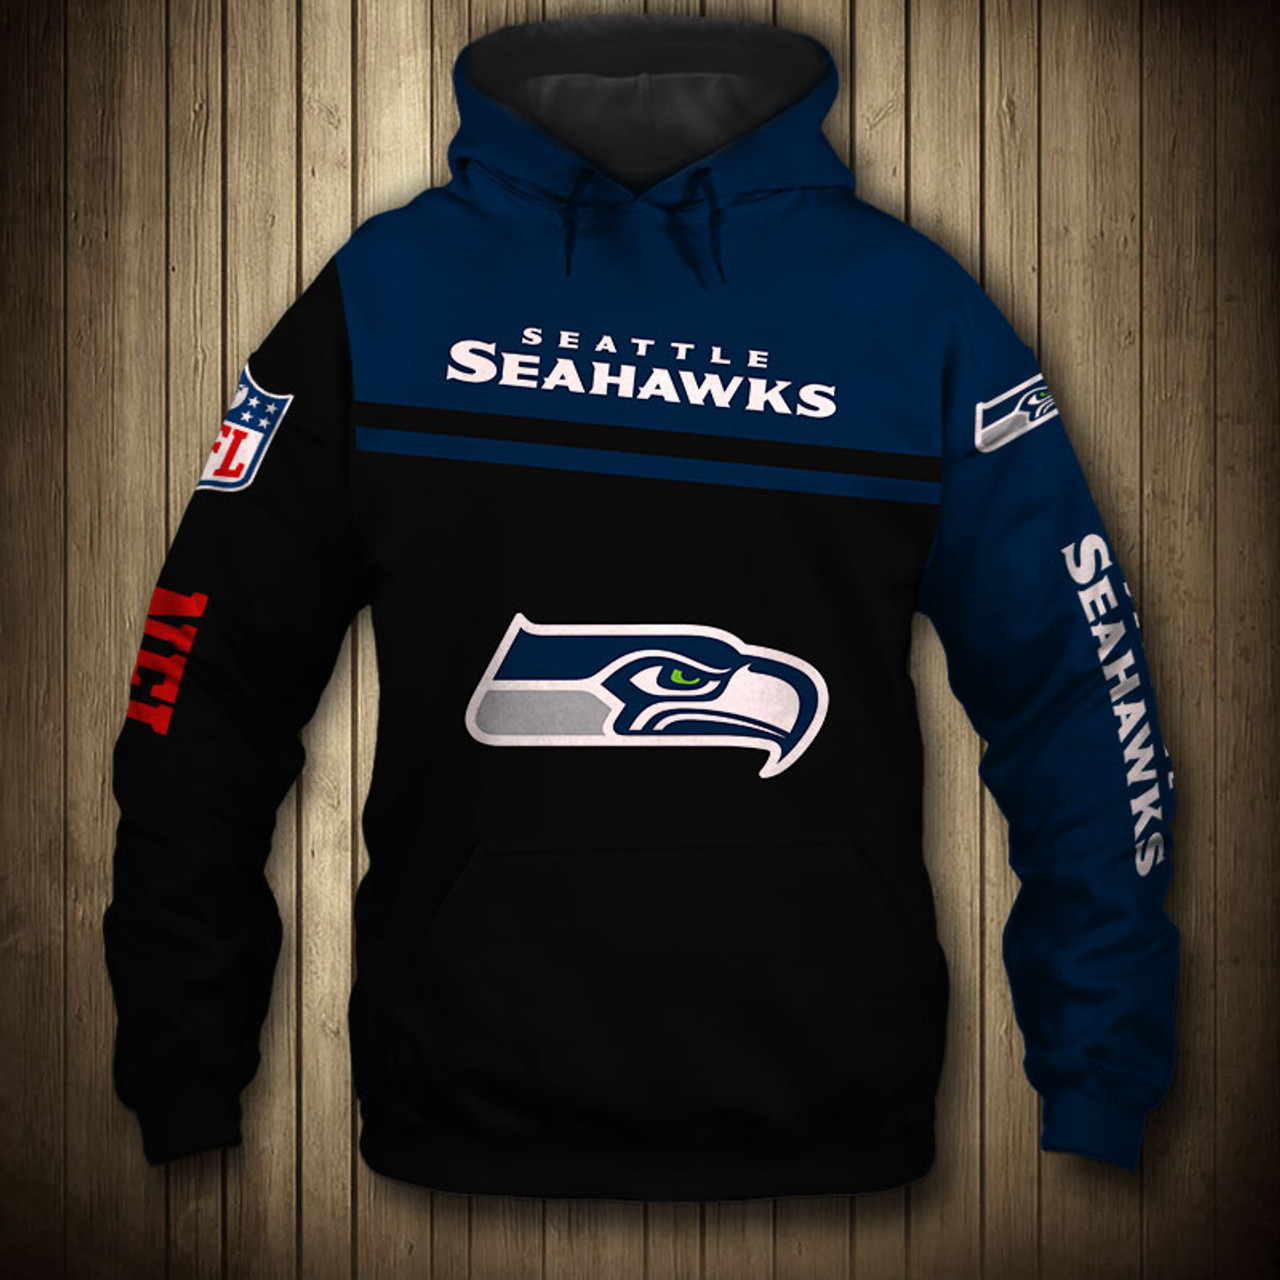 **(OFFICIAL NEW N.F.L.SEATTLE SEAHAWKS TEAM PULLOVER HOODIESNICE CUSTOM 3D GRAPHIC PRINTED DOUBLE SIDED ALL OVER GRAPHIC SEAHAWKS LOGOS &